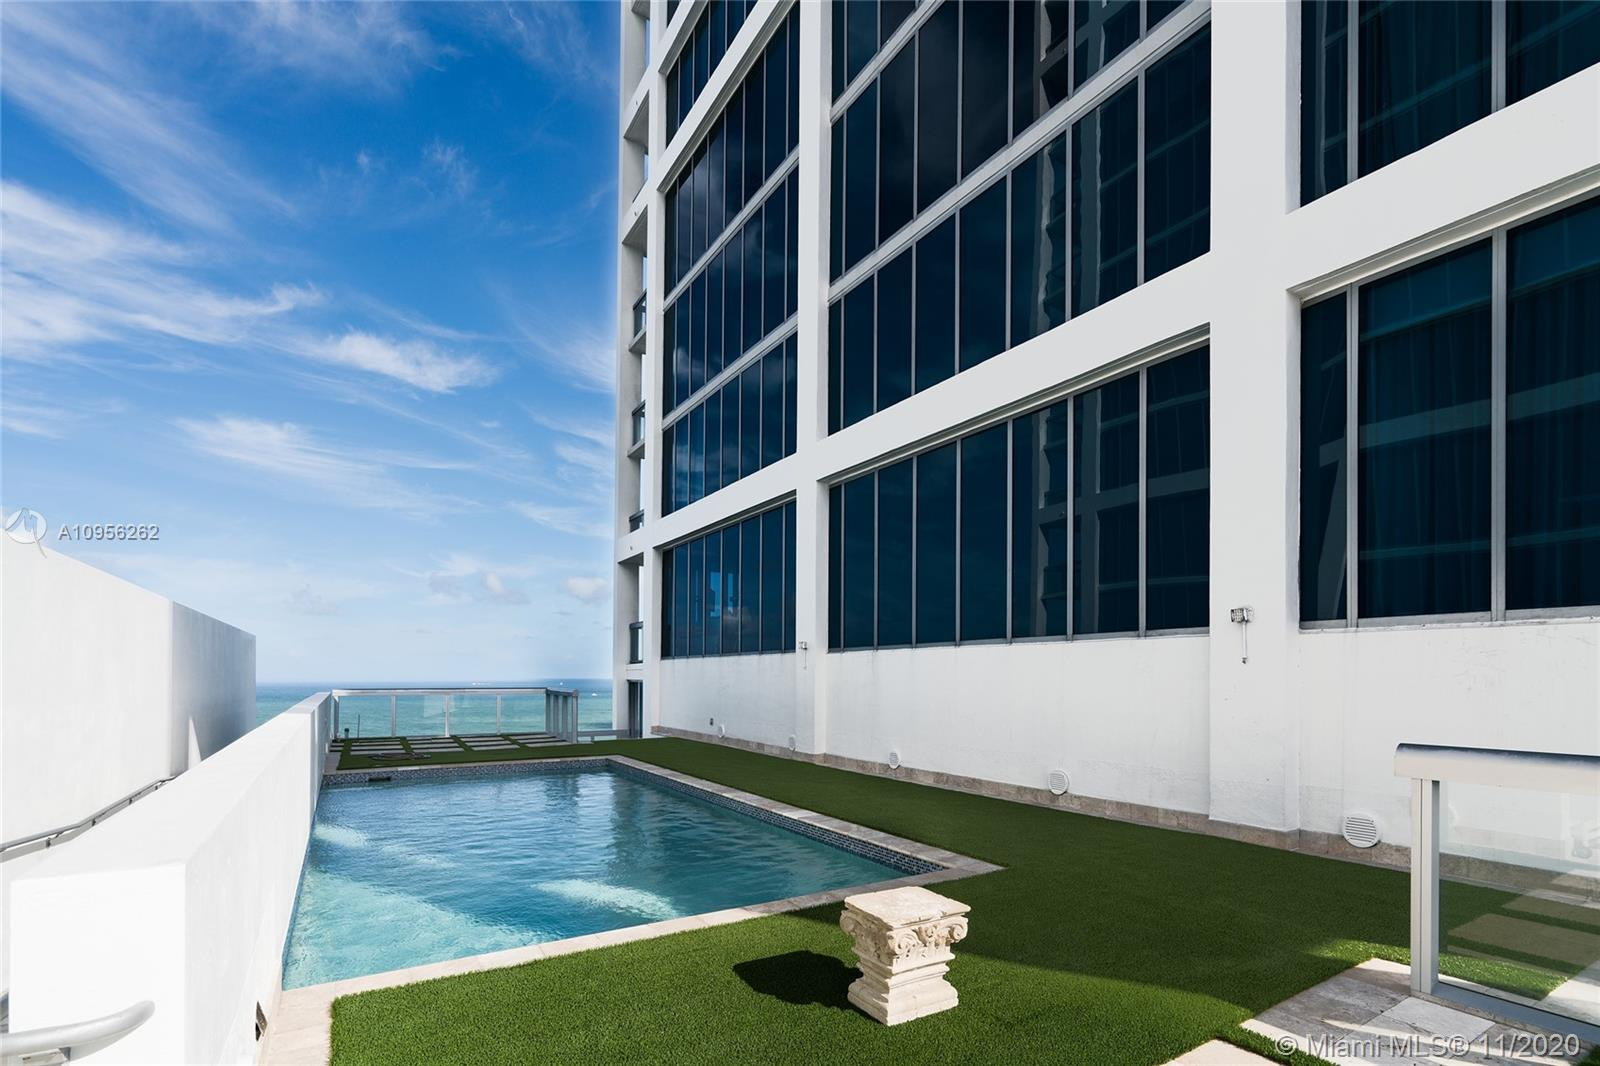 Opportunity to live in the only unit in the Carillion Miami with a unique 3,000 sf rooftop terrace w